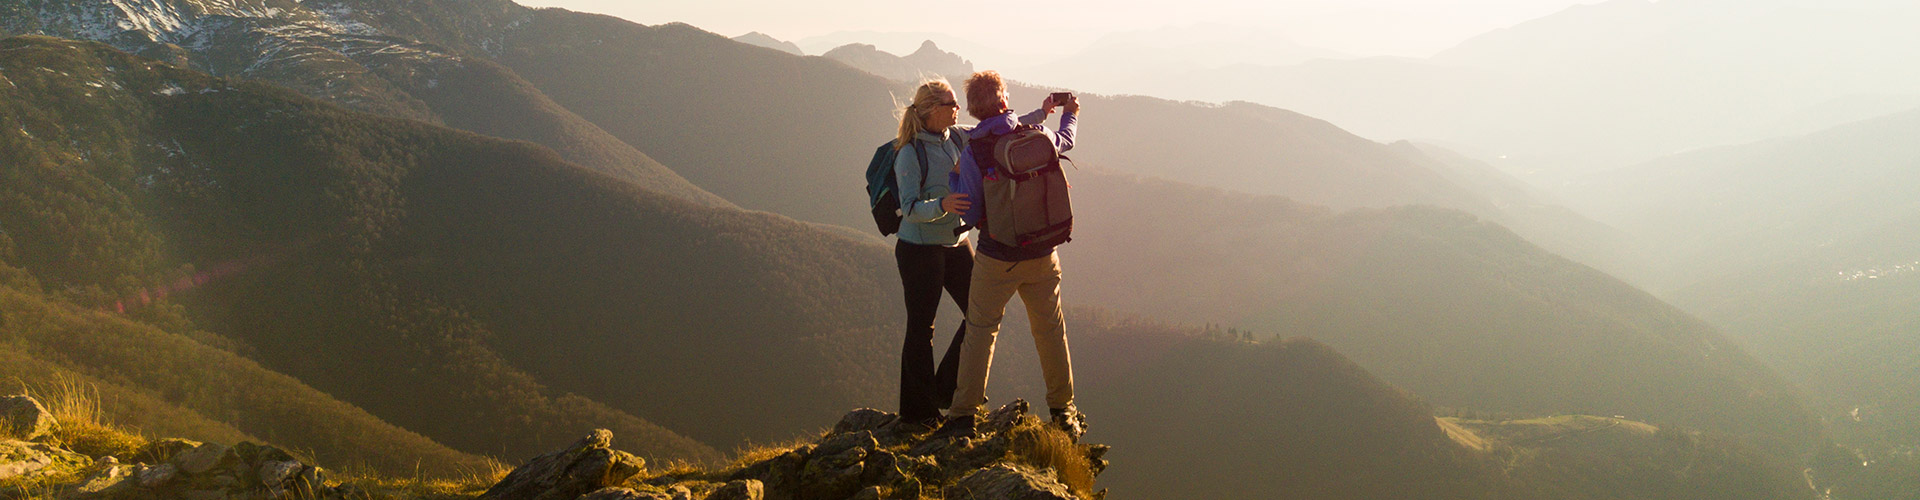 couple hiking in the mountains taking a photo